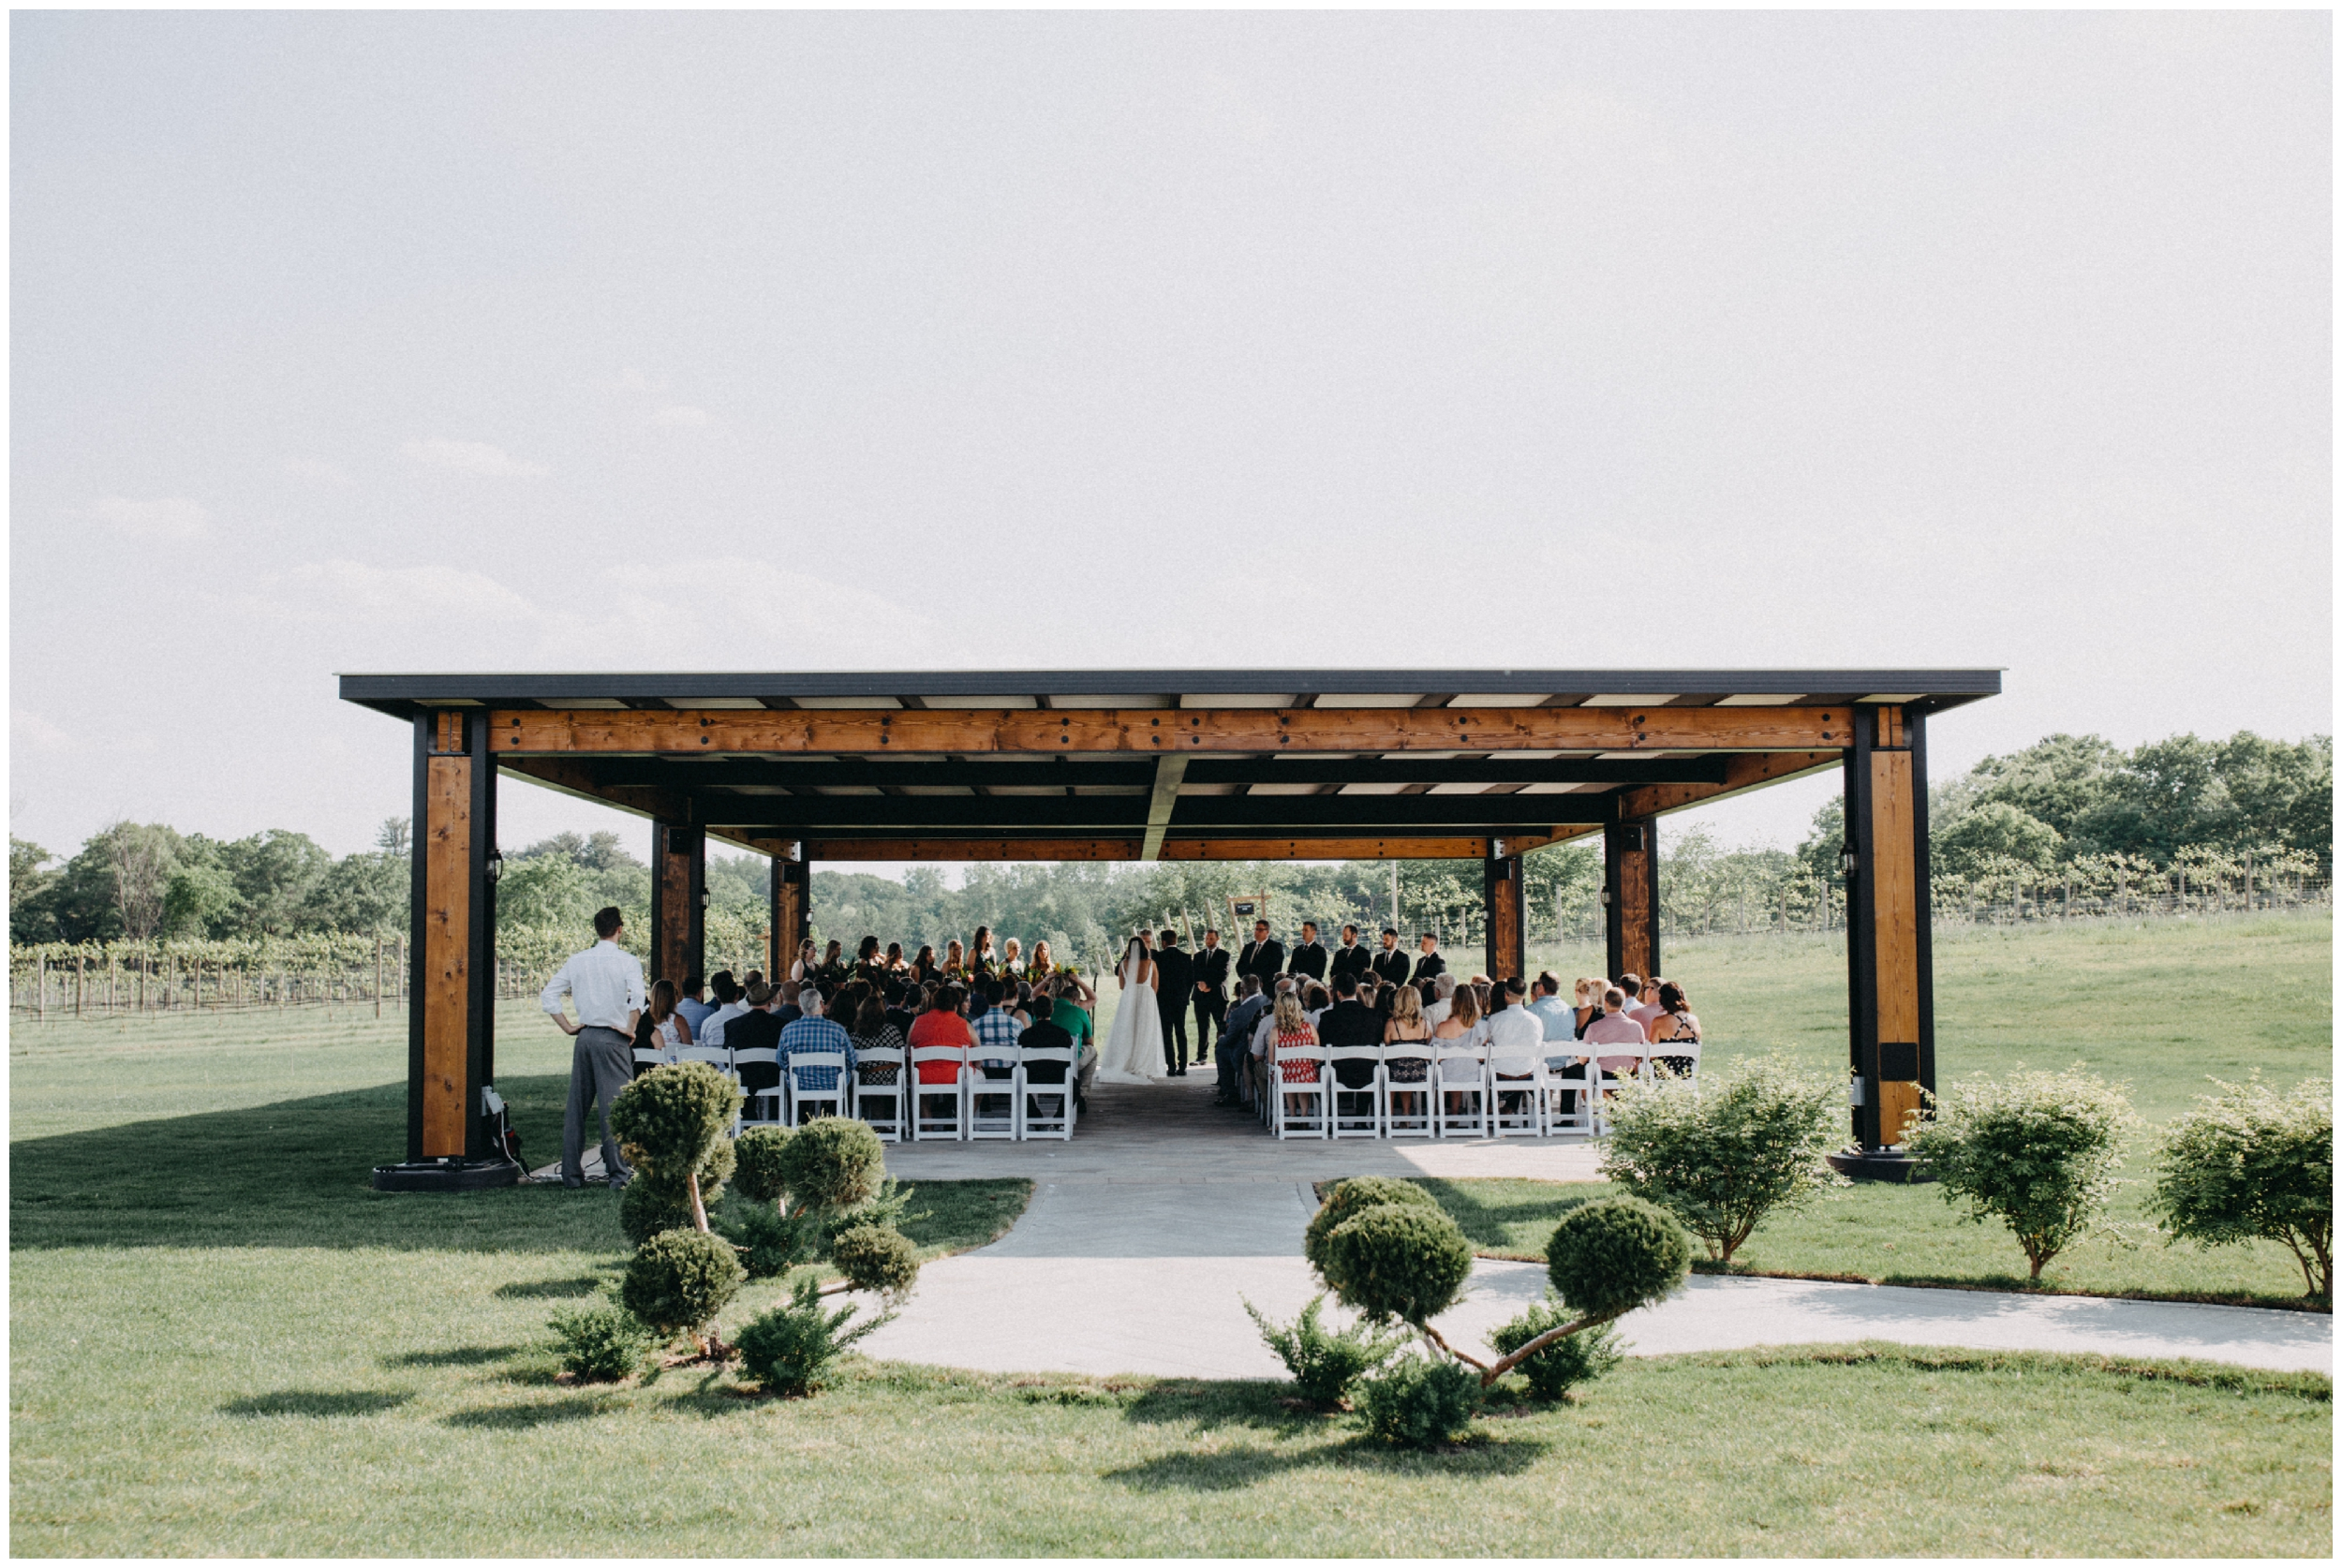 Vineyard wedding ceremony in Whitebear Lake Minnesota